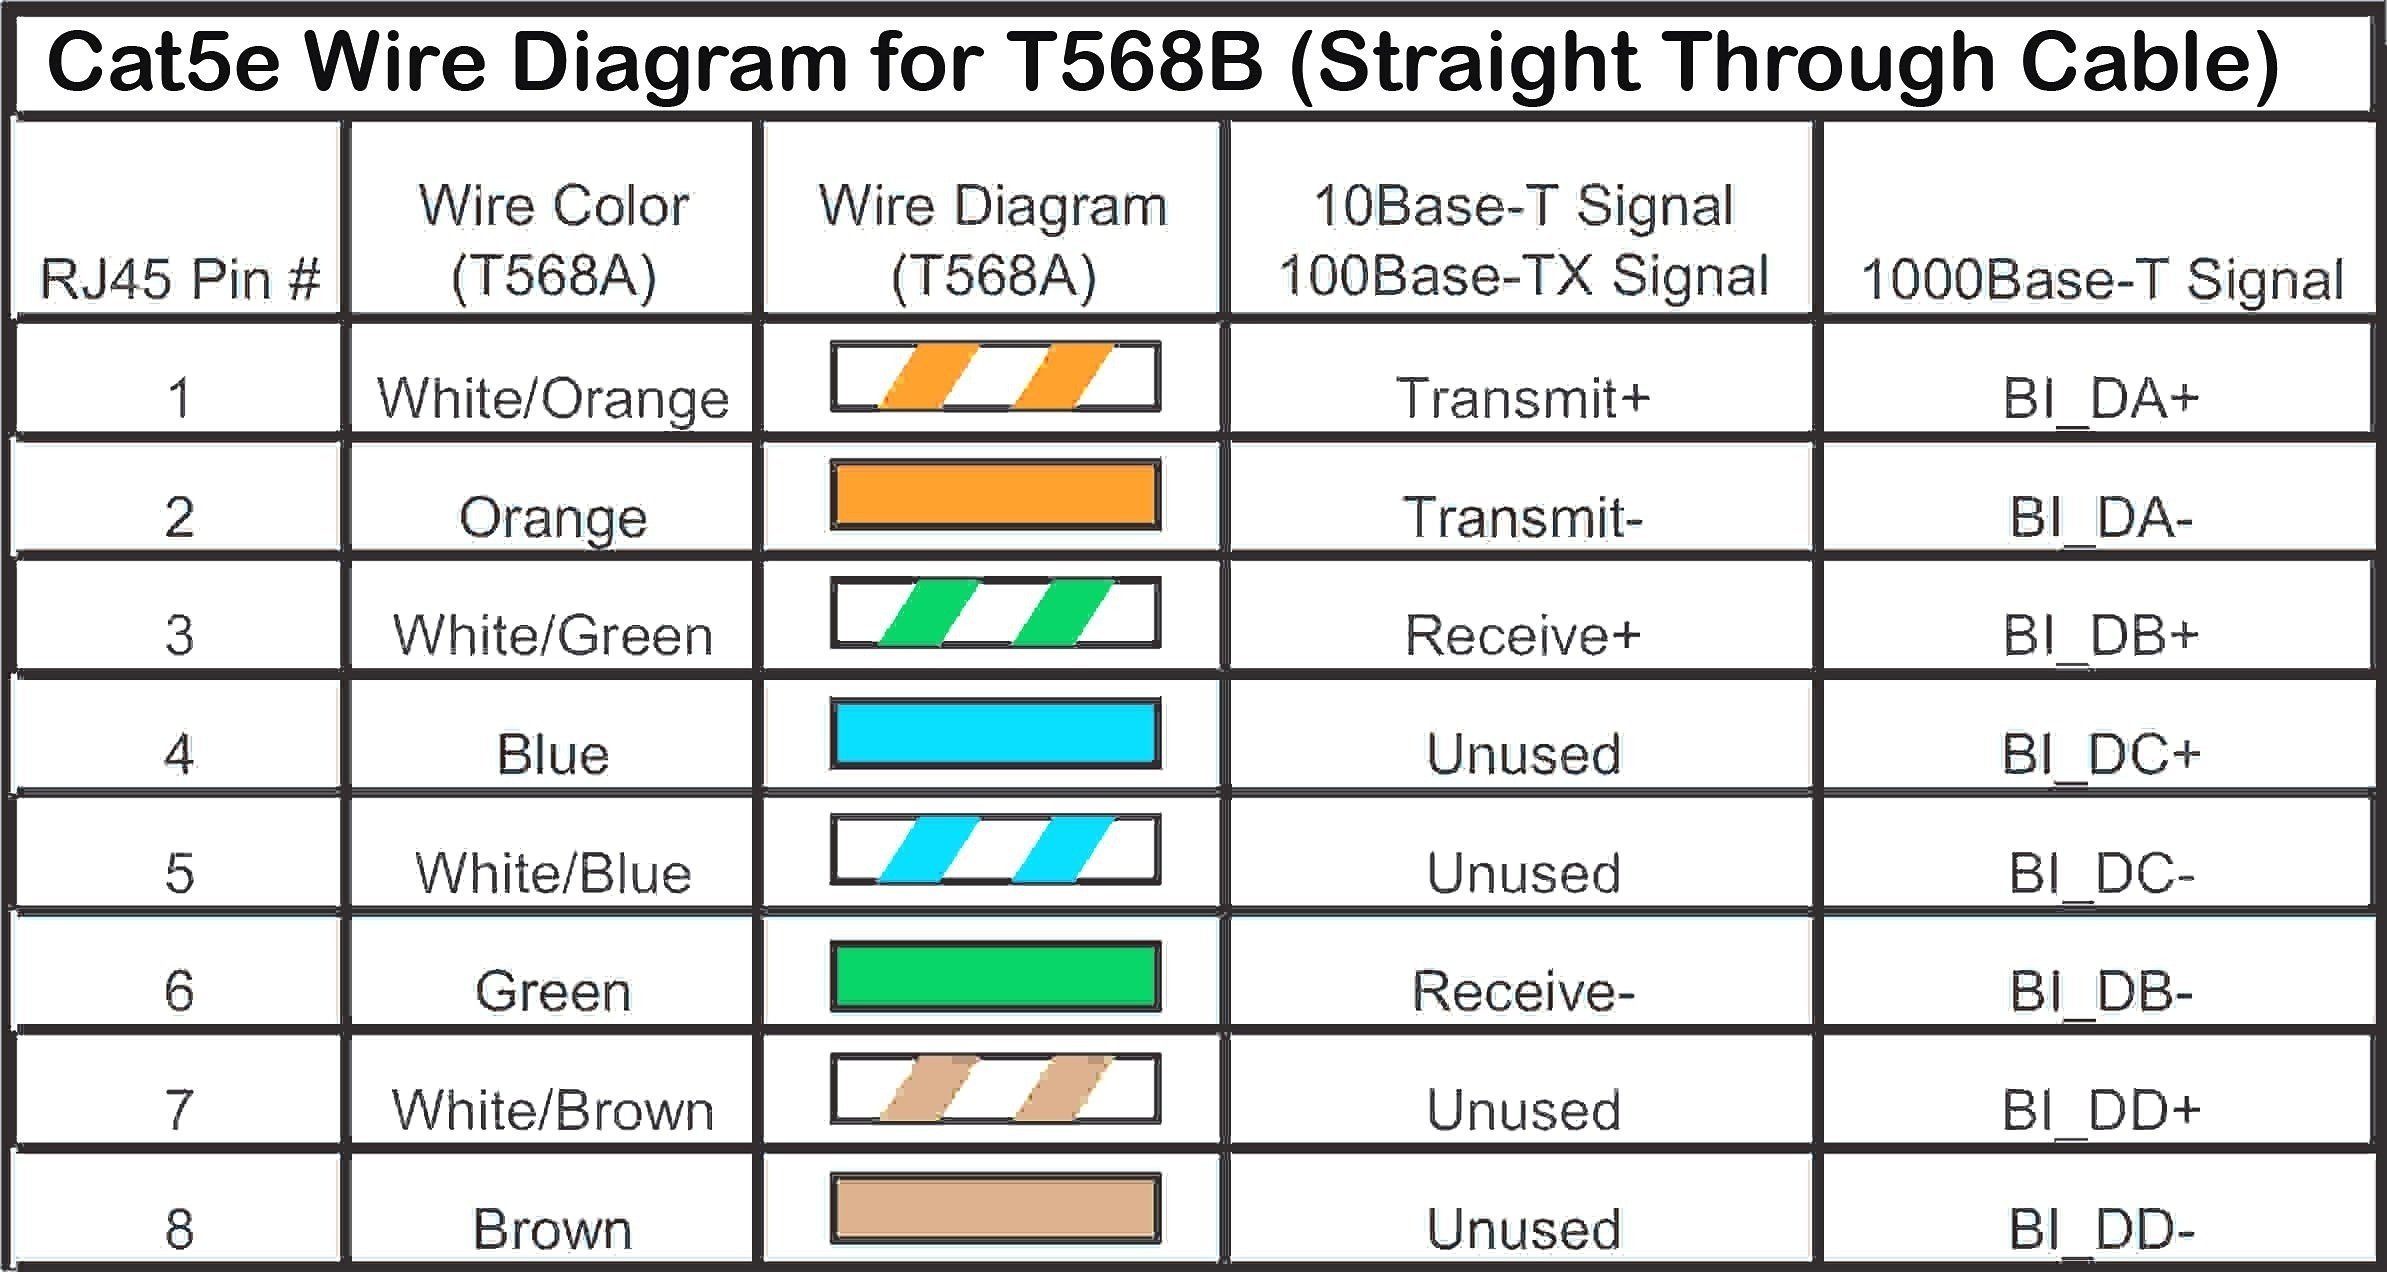 ethernet cable wiring diagram cat5e Collection-Wiring Diagram For A Cat5 Cable New Cat5e Wire Diagram New Ethernet Cable Wiring Diagram New Od Wiring 13-s